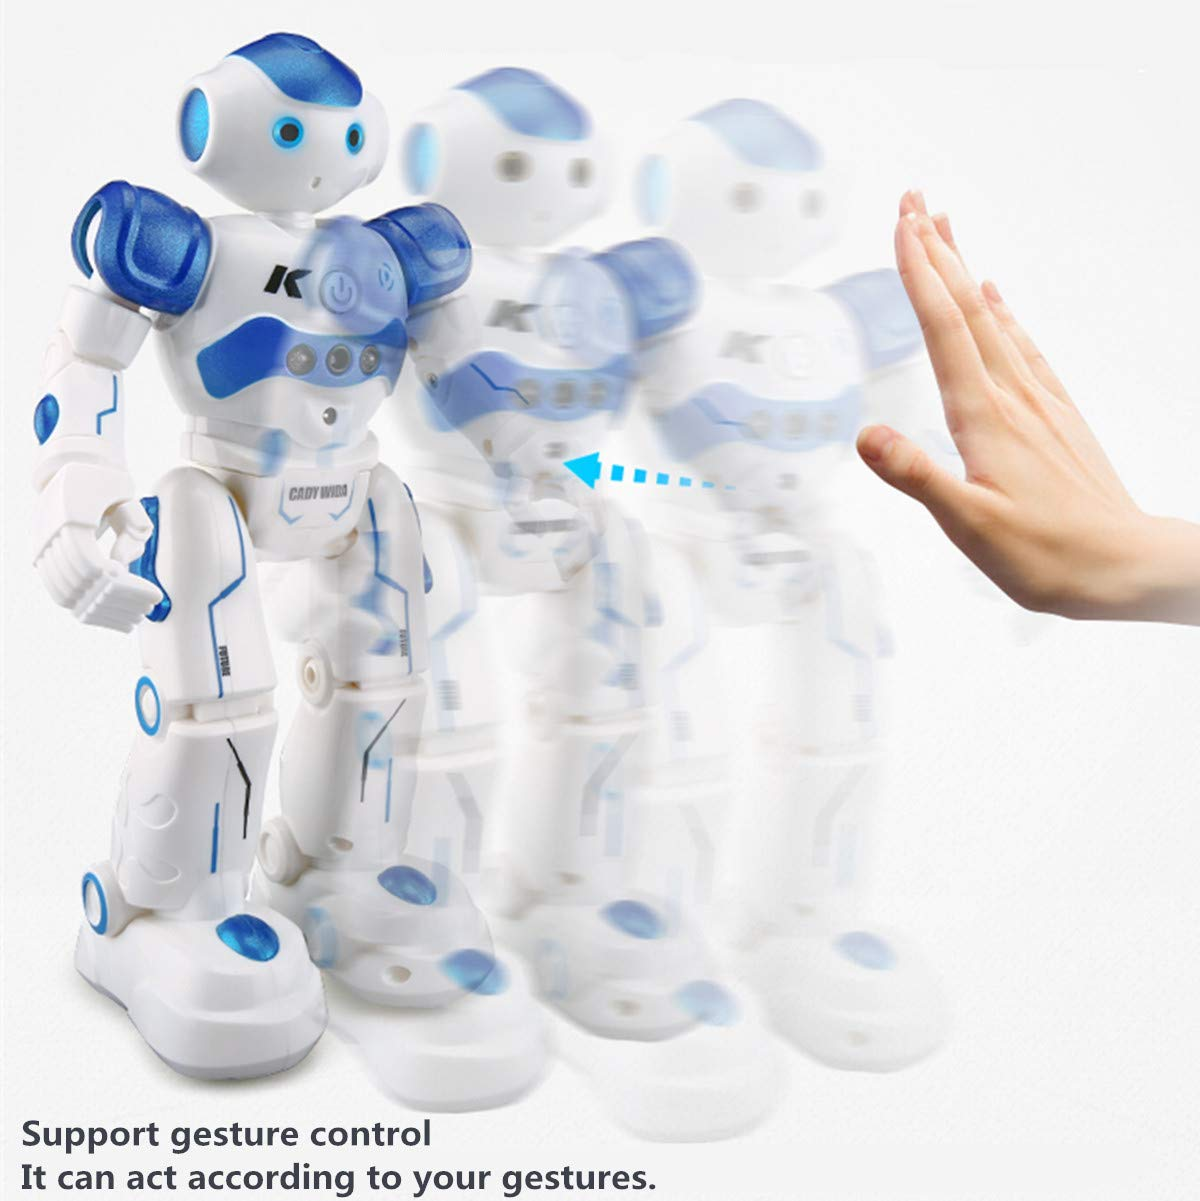 WEECOC Smart Robot Toys Gesture Control Remote Control Robot Kids Toys Birthday Can Singing Dancing Speaking Two Walking Models (White) by WEECOC (Image #5)